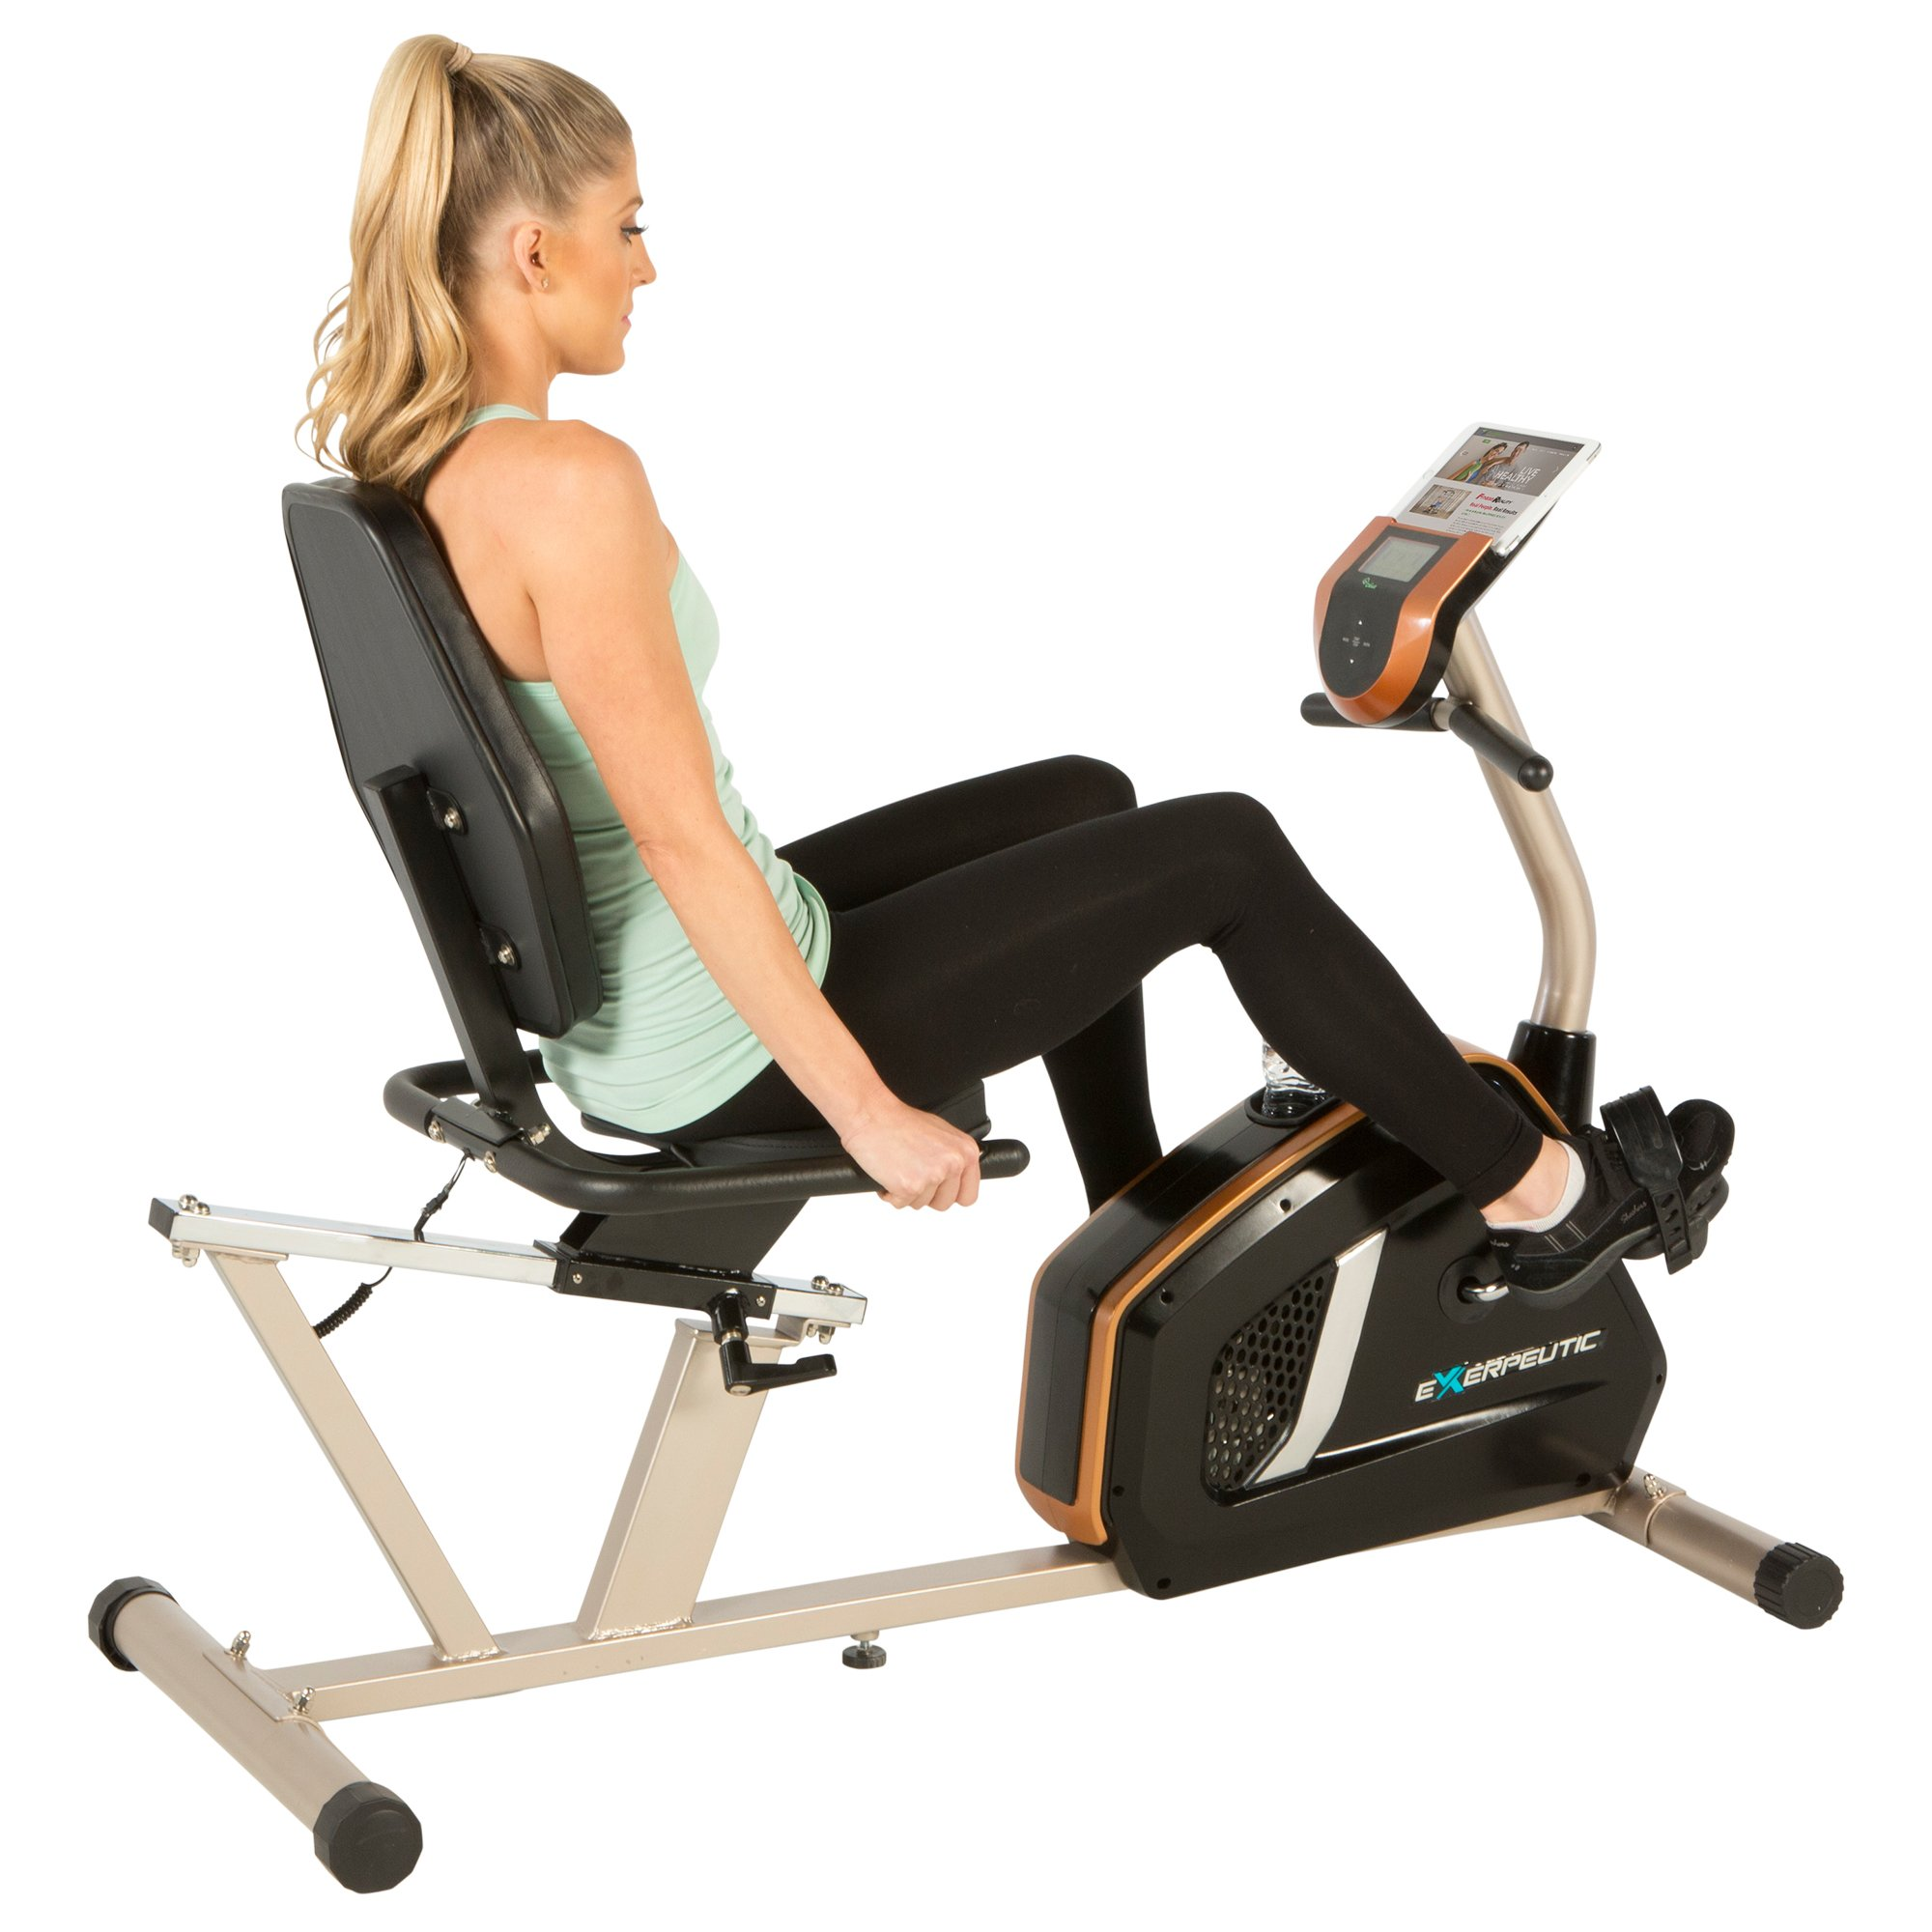 Exerpeutic GOLD 975XBT Bluetooth Smart Technology Recumbent Exercise Bike with 21 Workout Programs by Exerpeutic